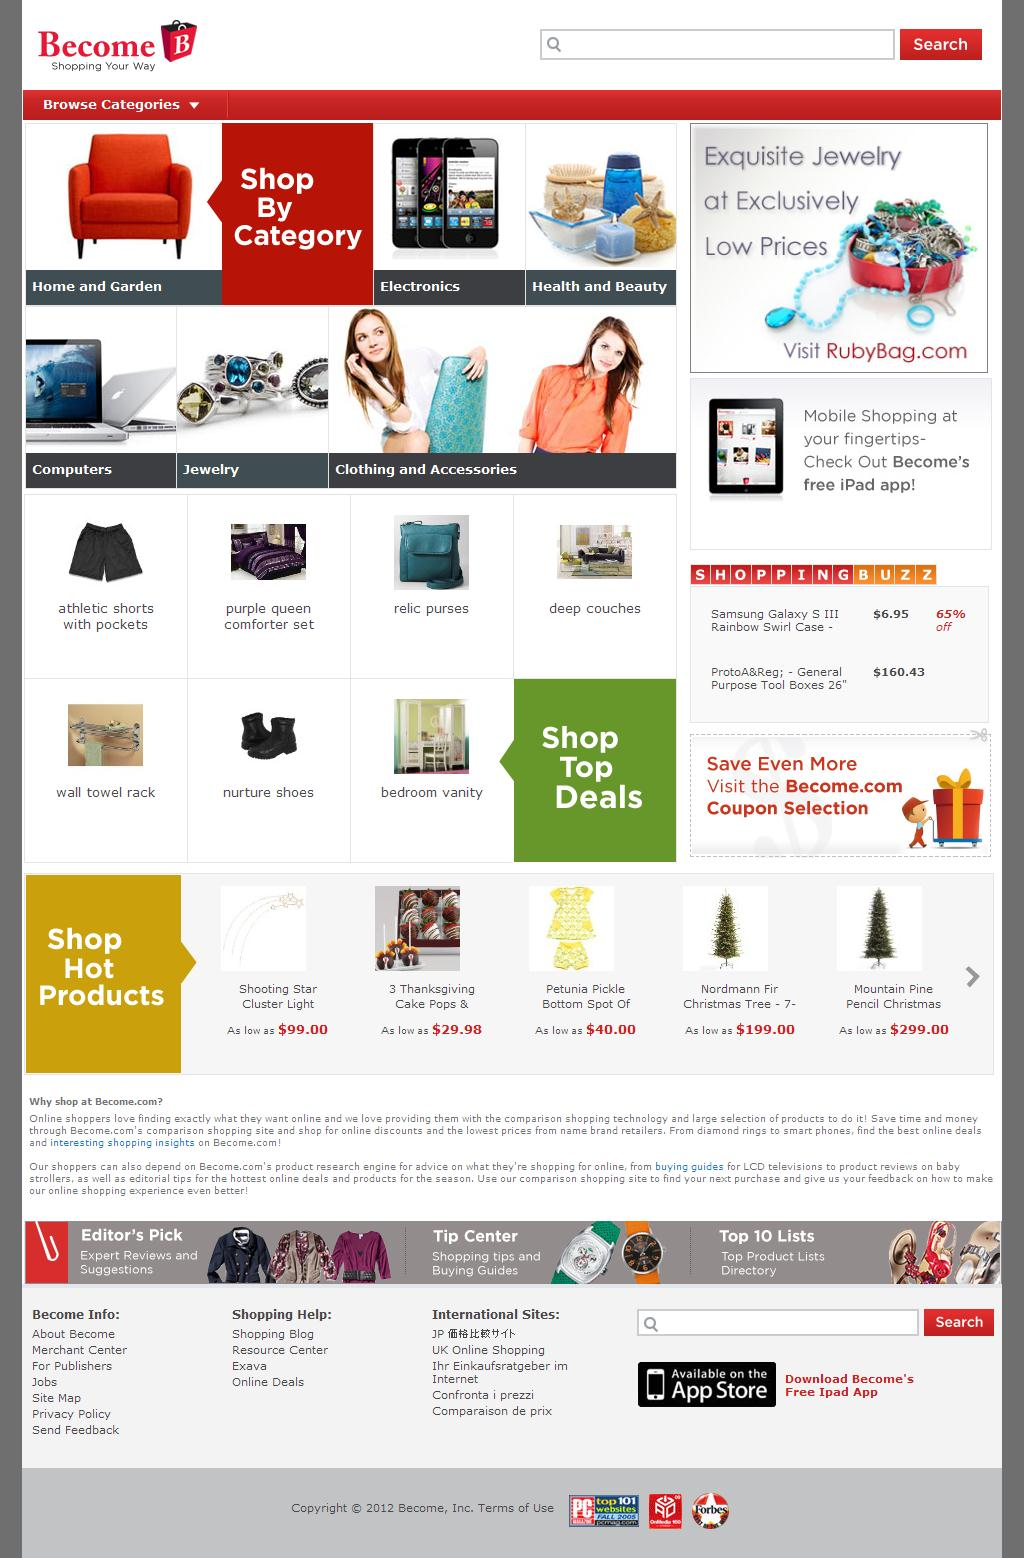 Online Shopping - Price Comparison, Product Reviews and Hot Deals on Become.com